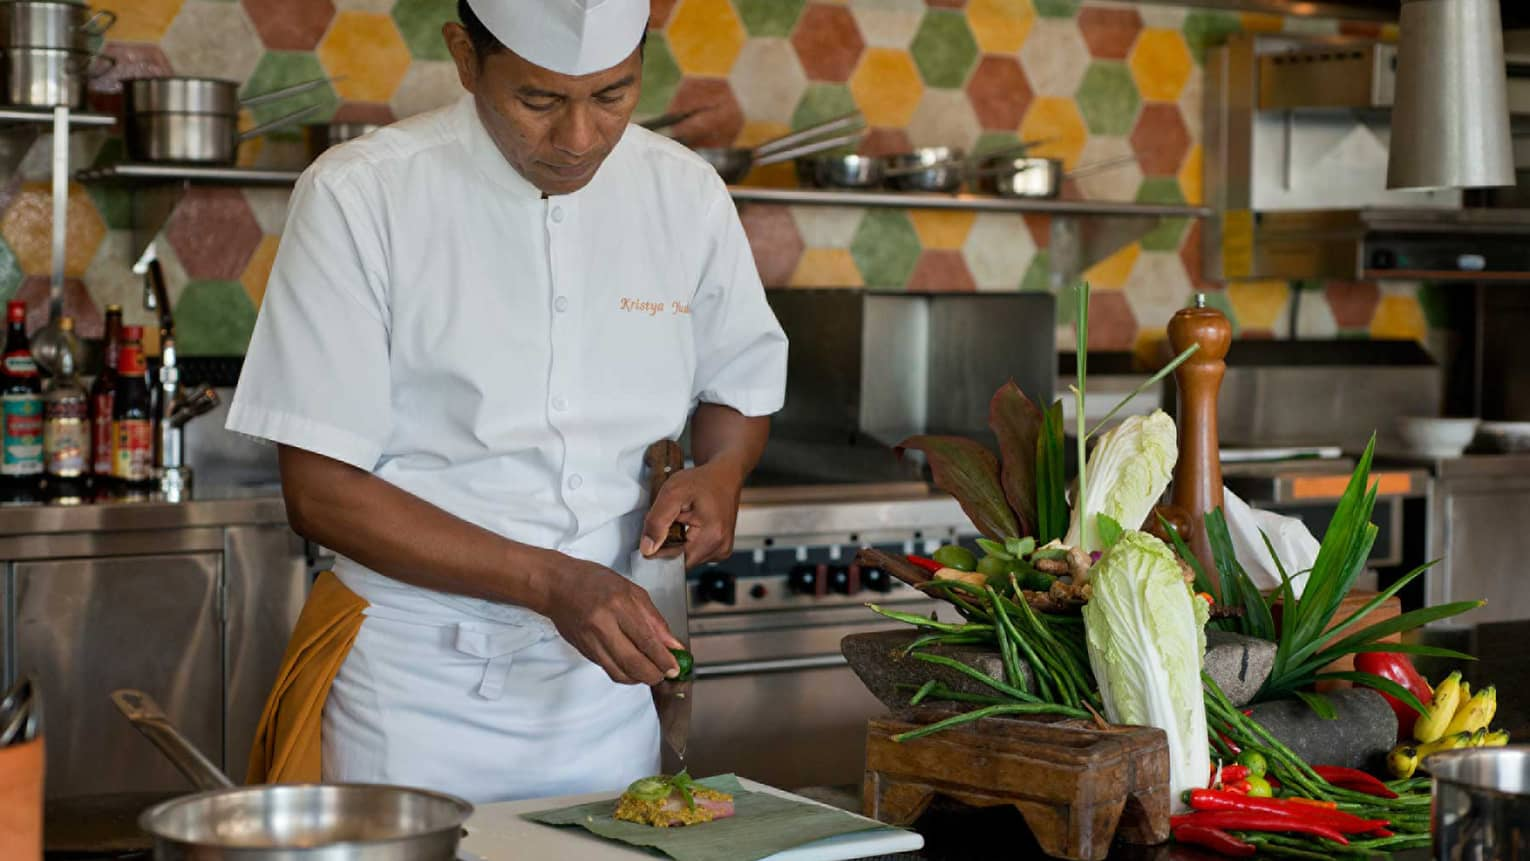 Chef in white uniform squeezes lime on large kitchen knife over dish, next to heads of fresh lettuce and whole peppers